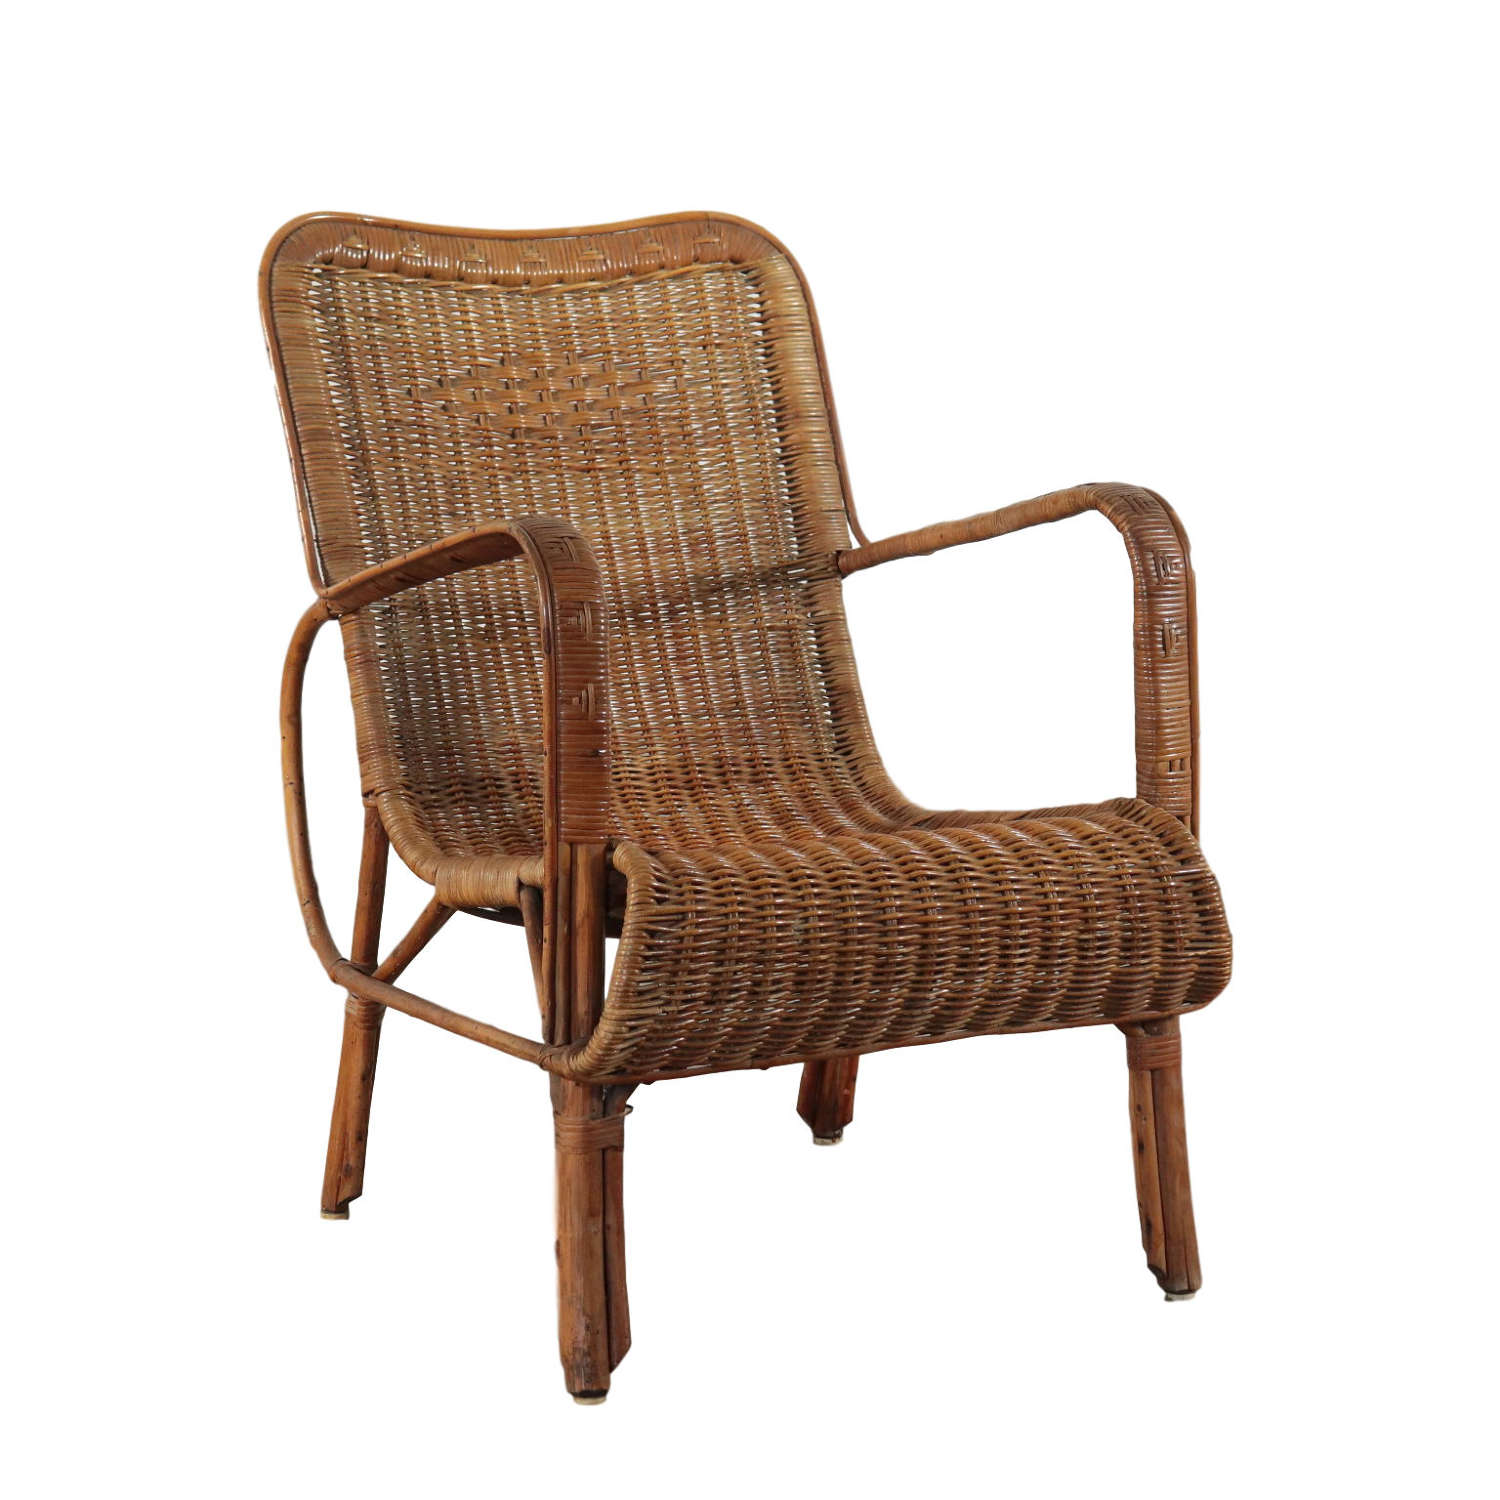 Vittorio Bonacina wicker chair